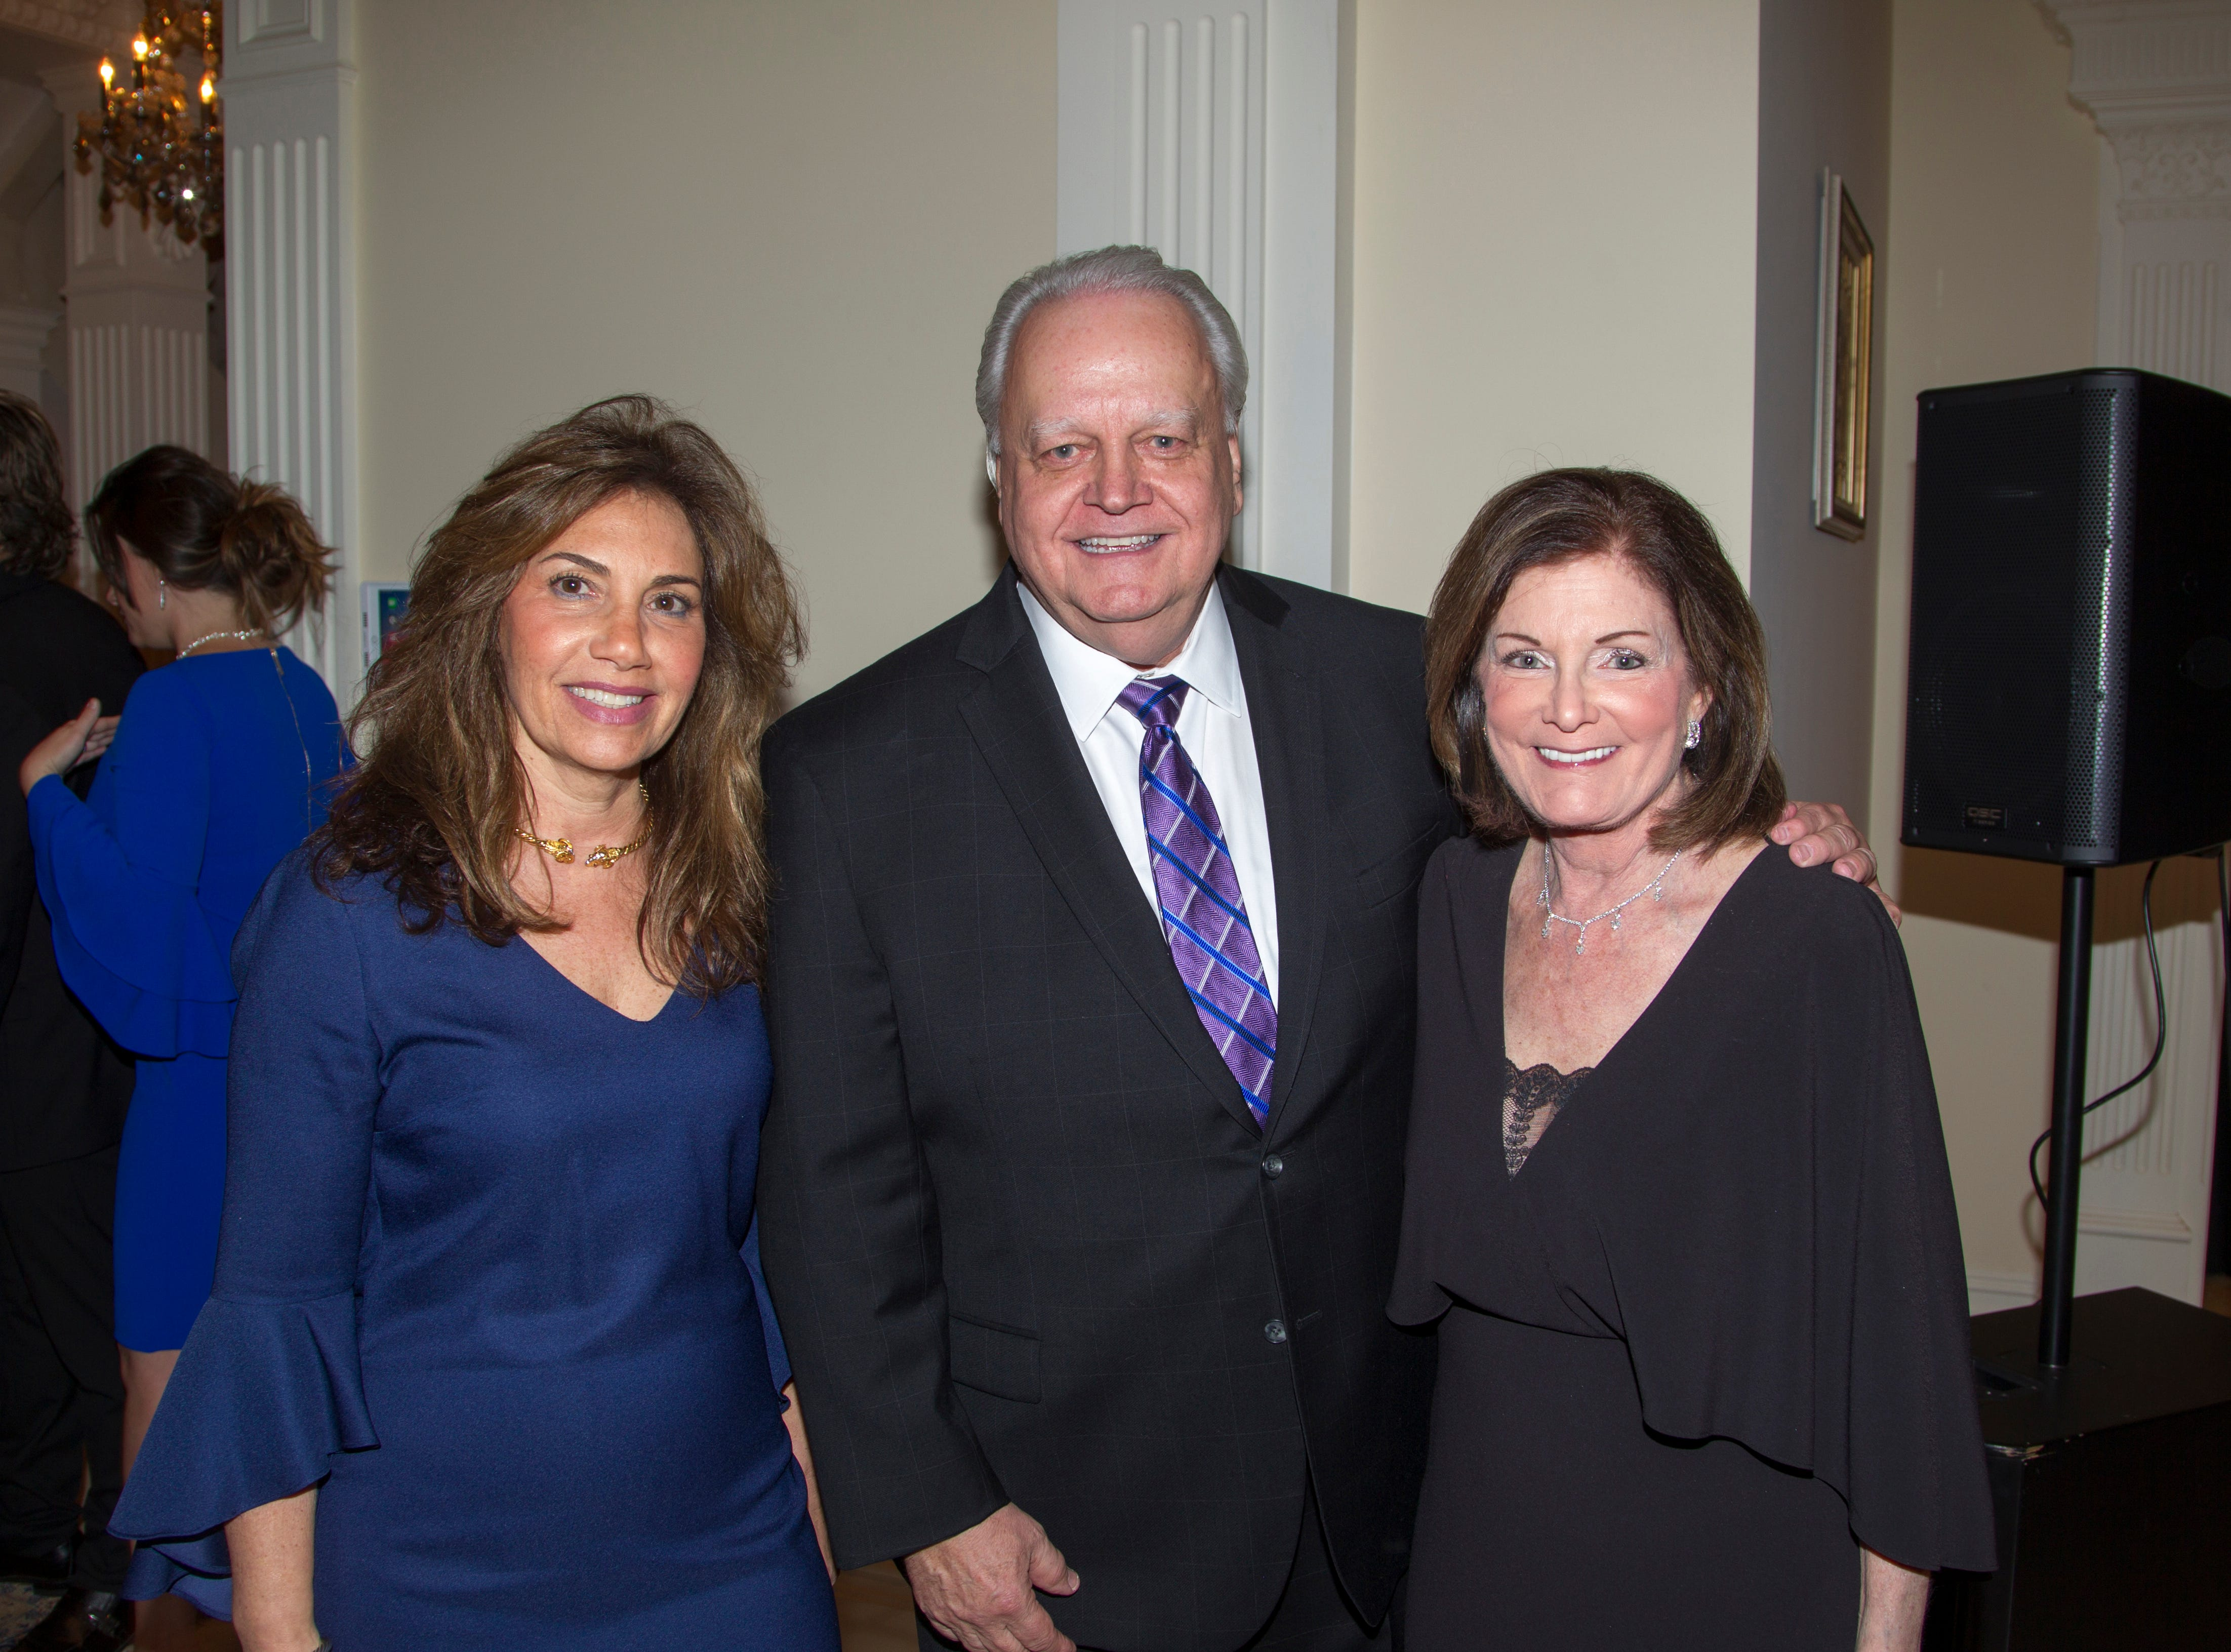 Alissa Blate, Mayor Kurpis, Judy. Saddle River Arts Council presents An Evening of Giving Back featureing Eric Genuis in Saddle River. 03/30/2019